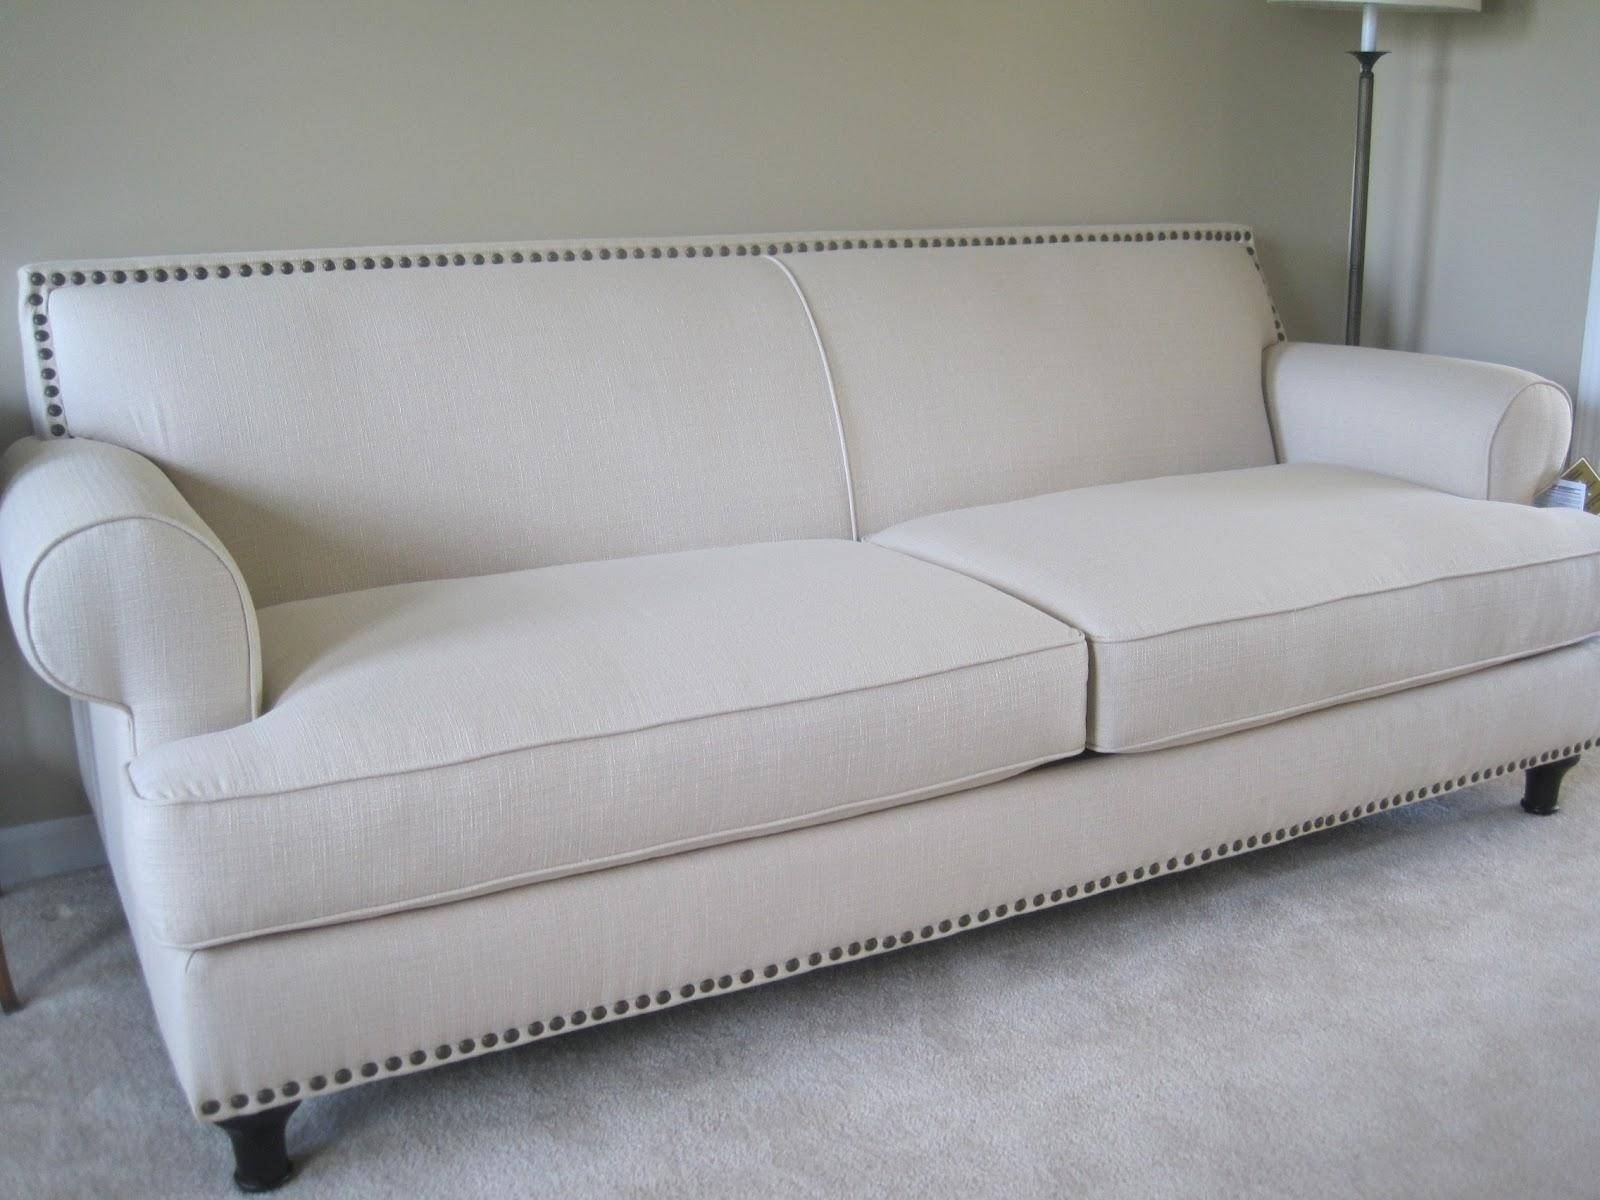 20+ Choices Of Pier 1 Sofa Beds   Sofa Ideas with Pier 1 Sofa Beds (Image 3 of 15)